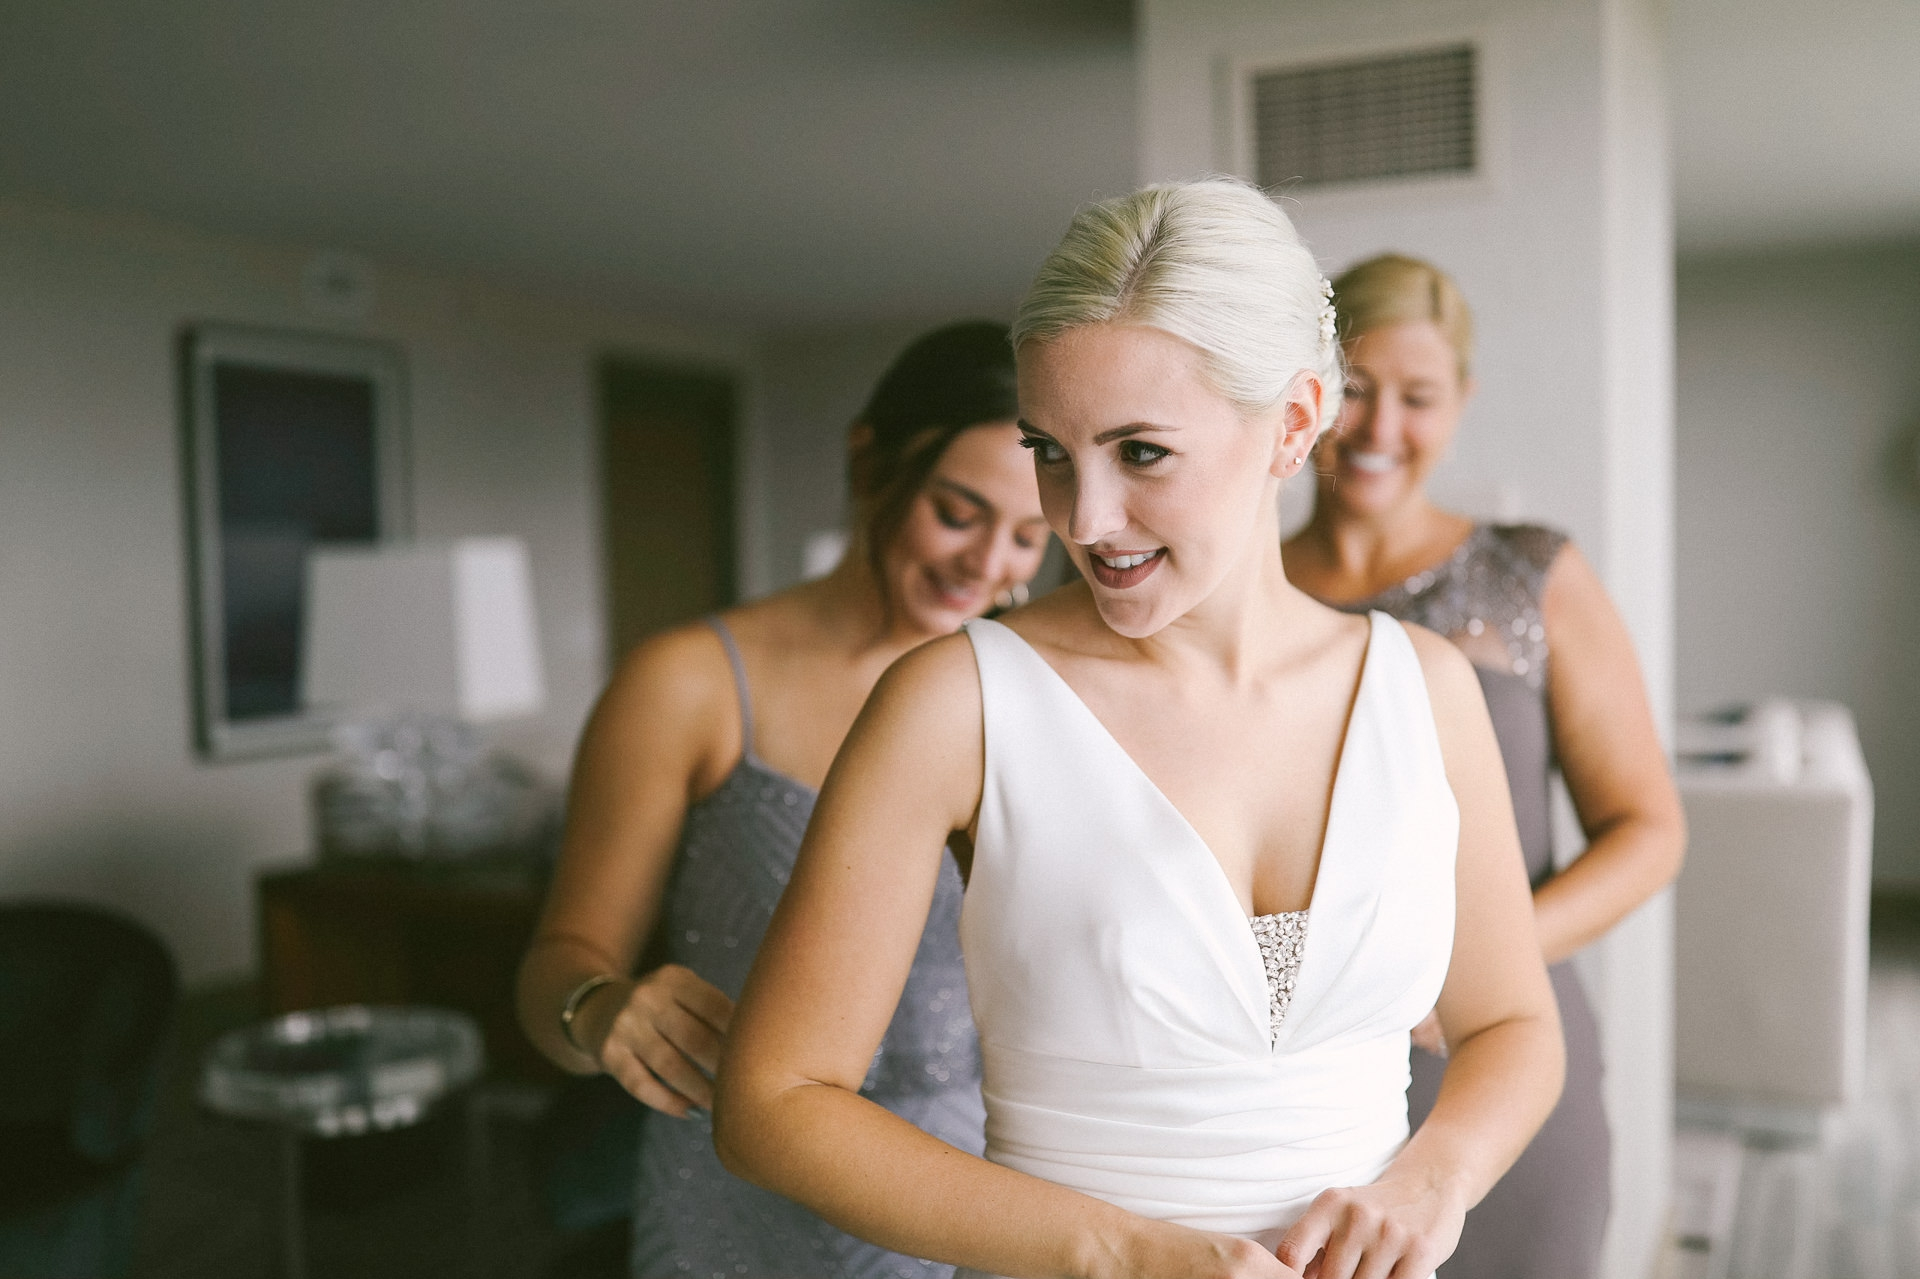 Hilton Cleveland Downtown Hotel Wedding Photographer Photos 11.jpg